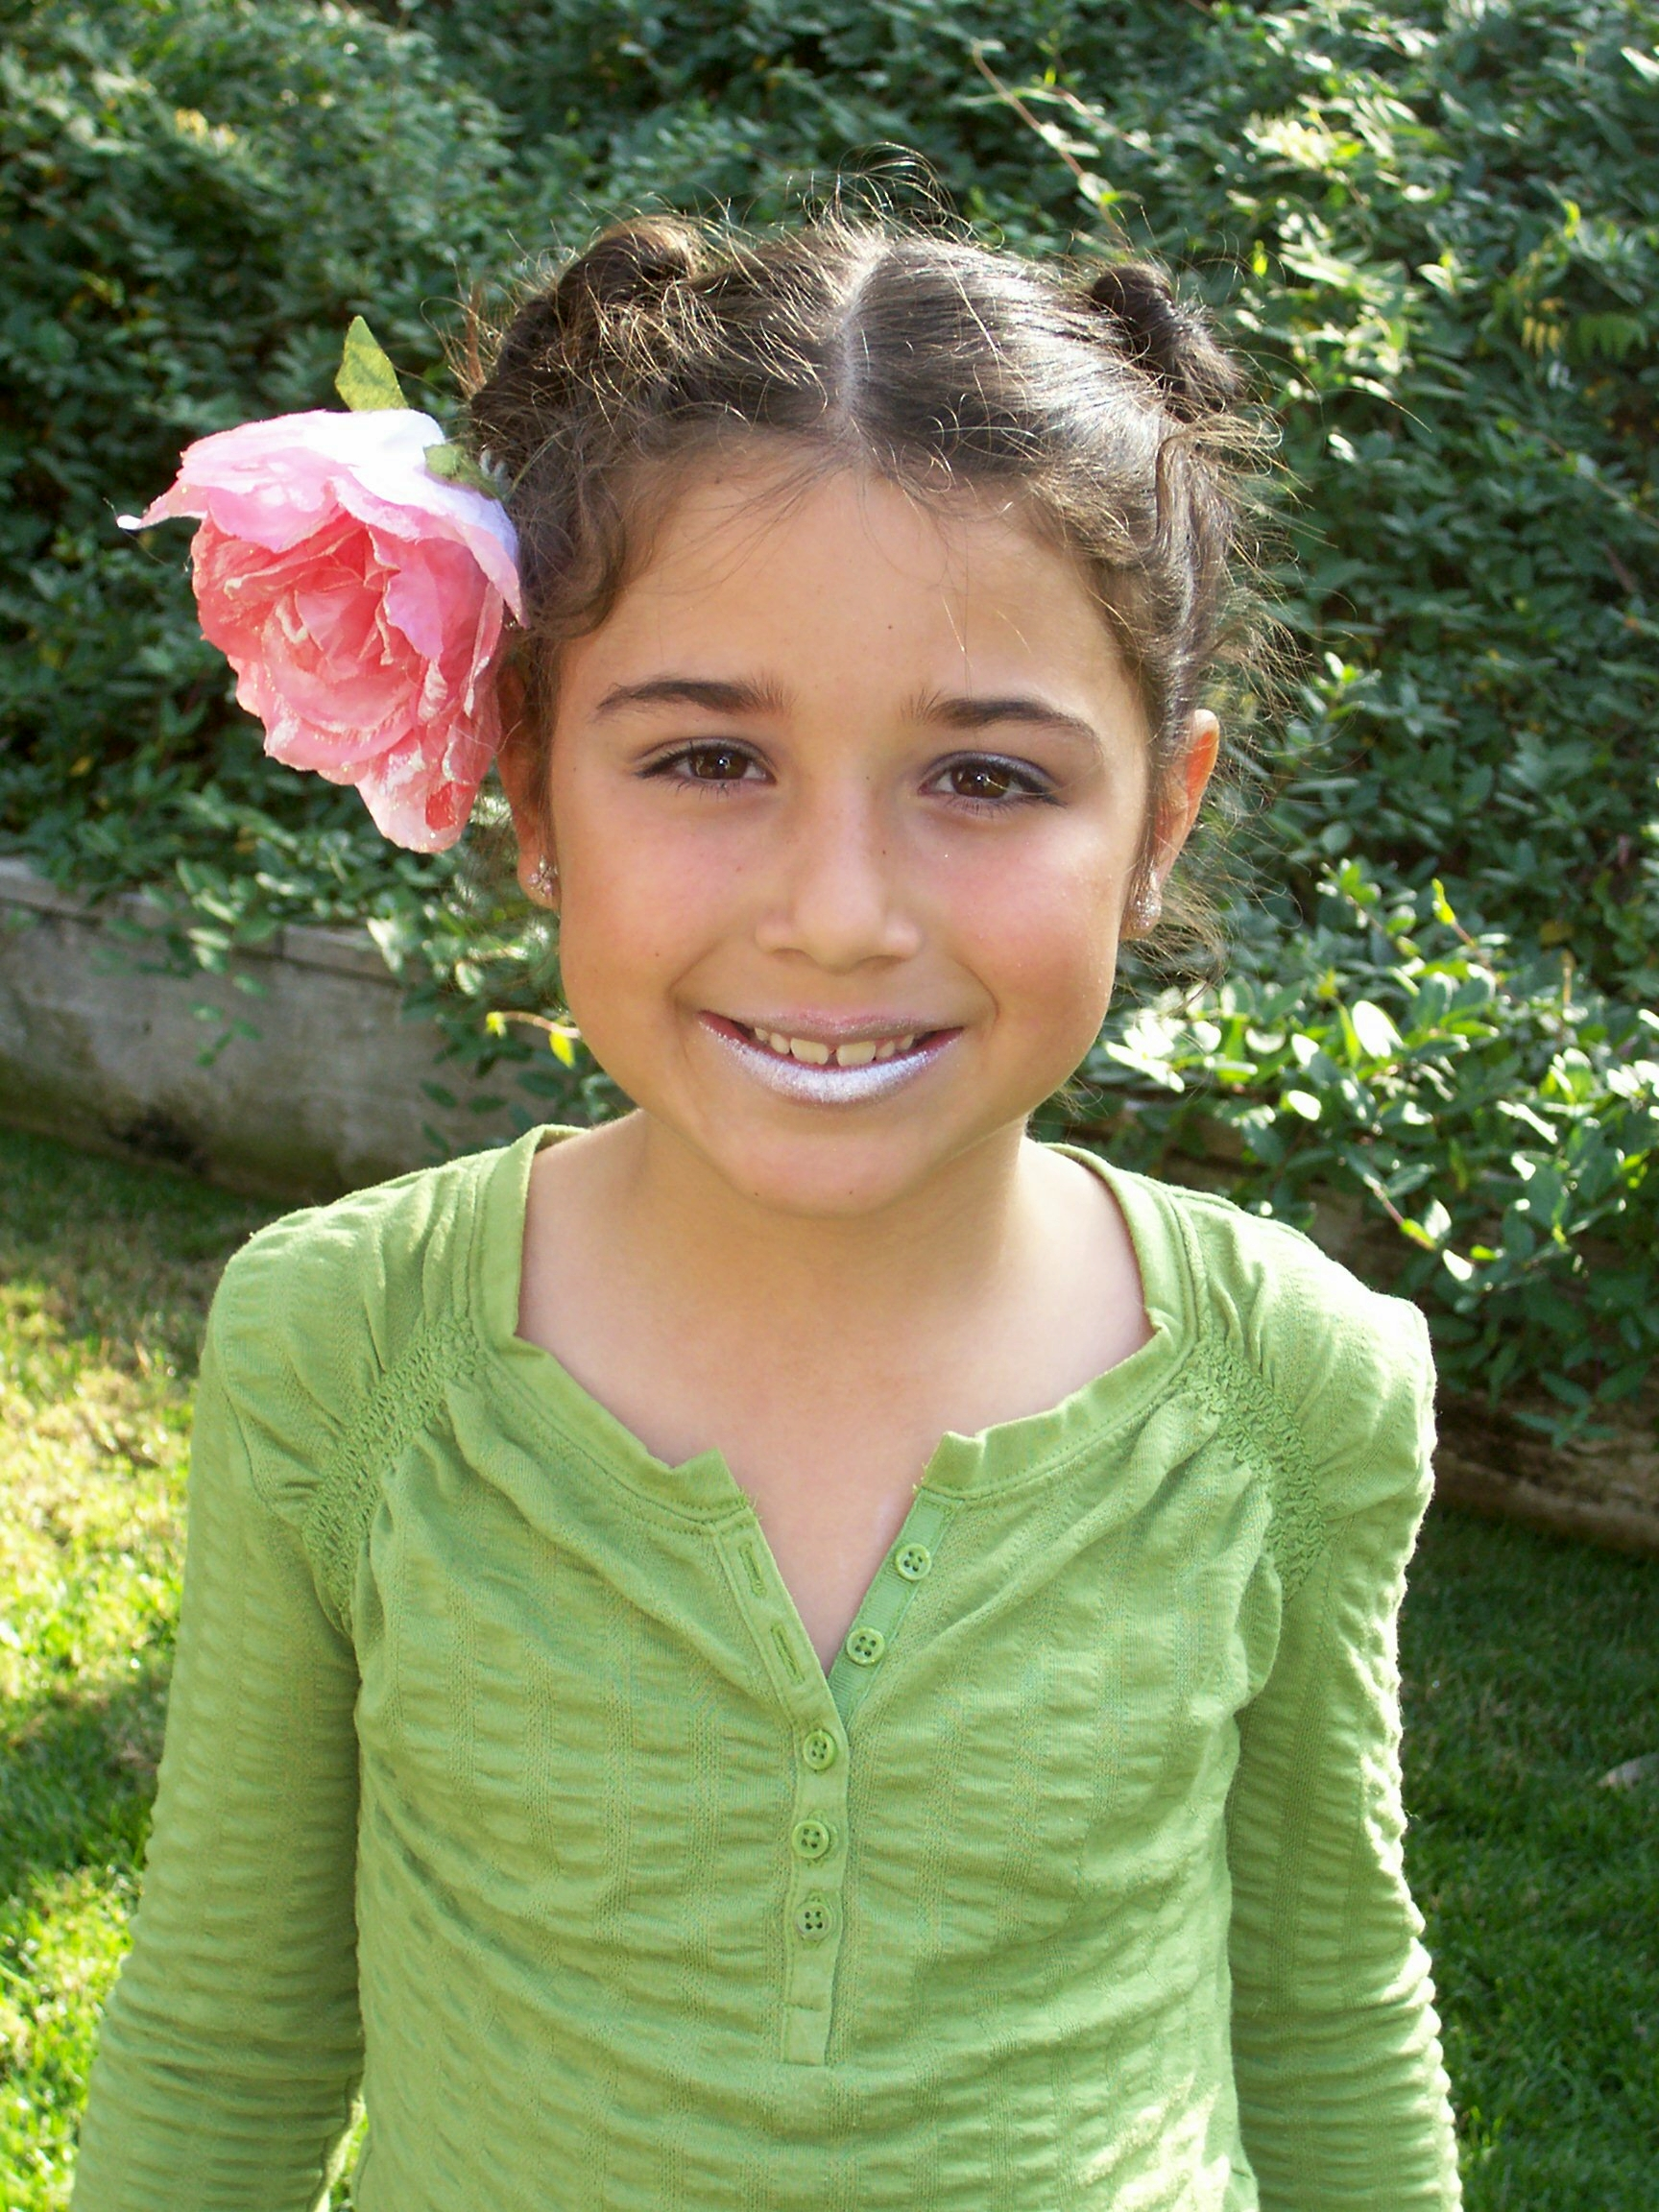 Little Girl with Flowers